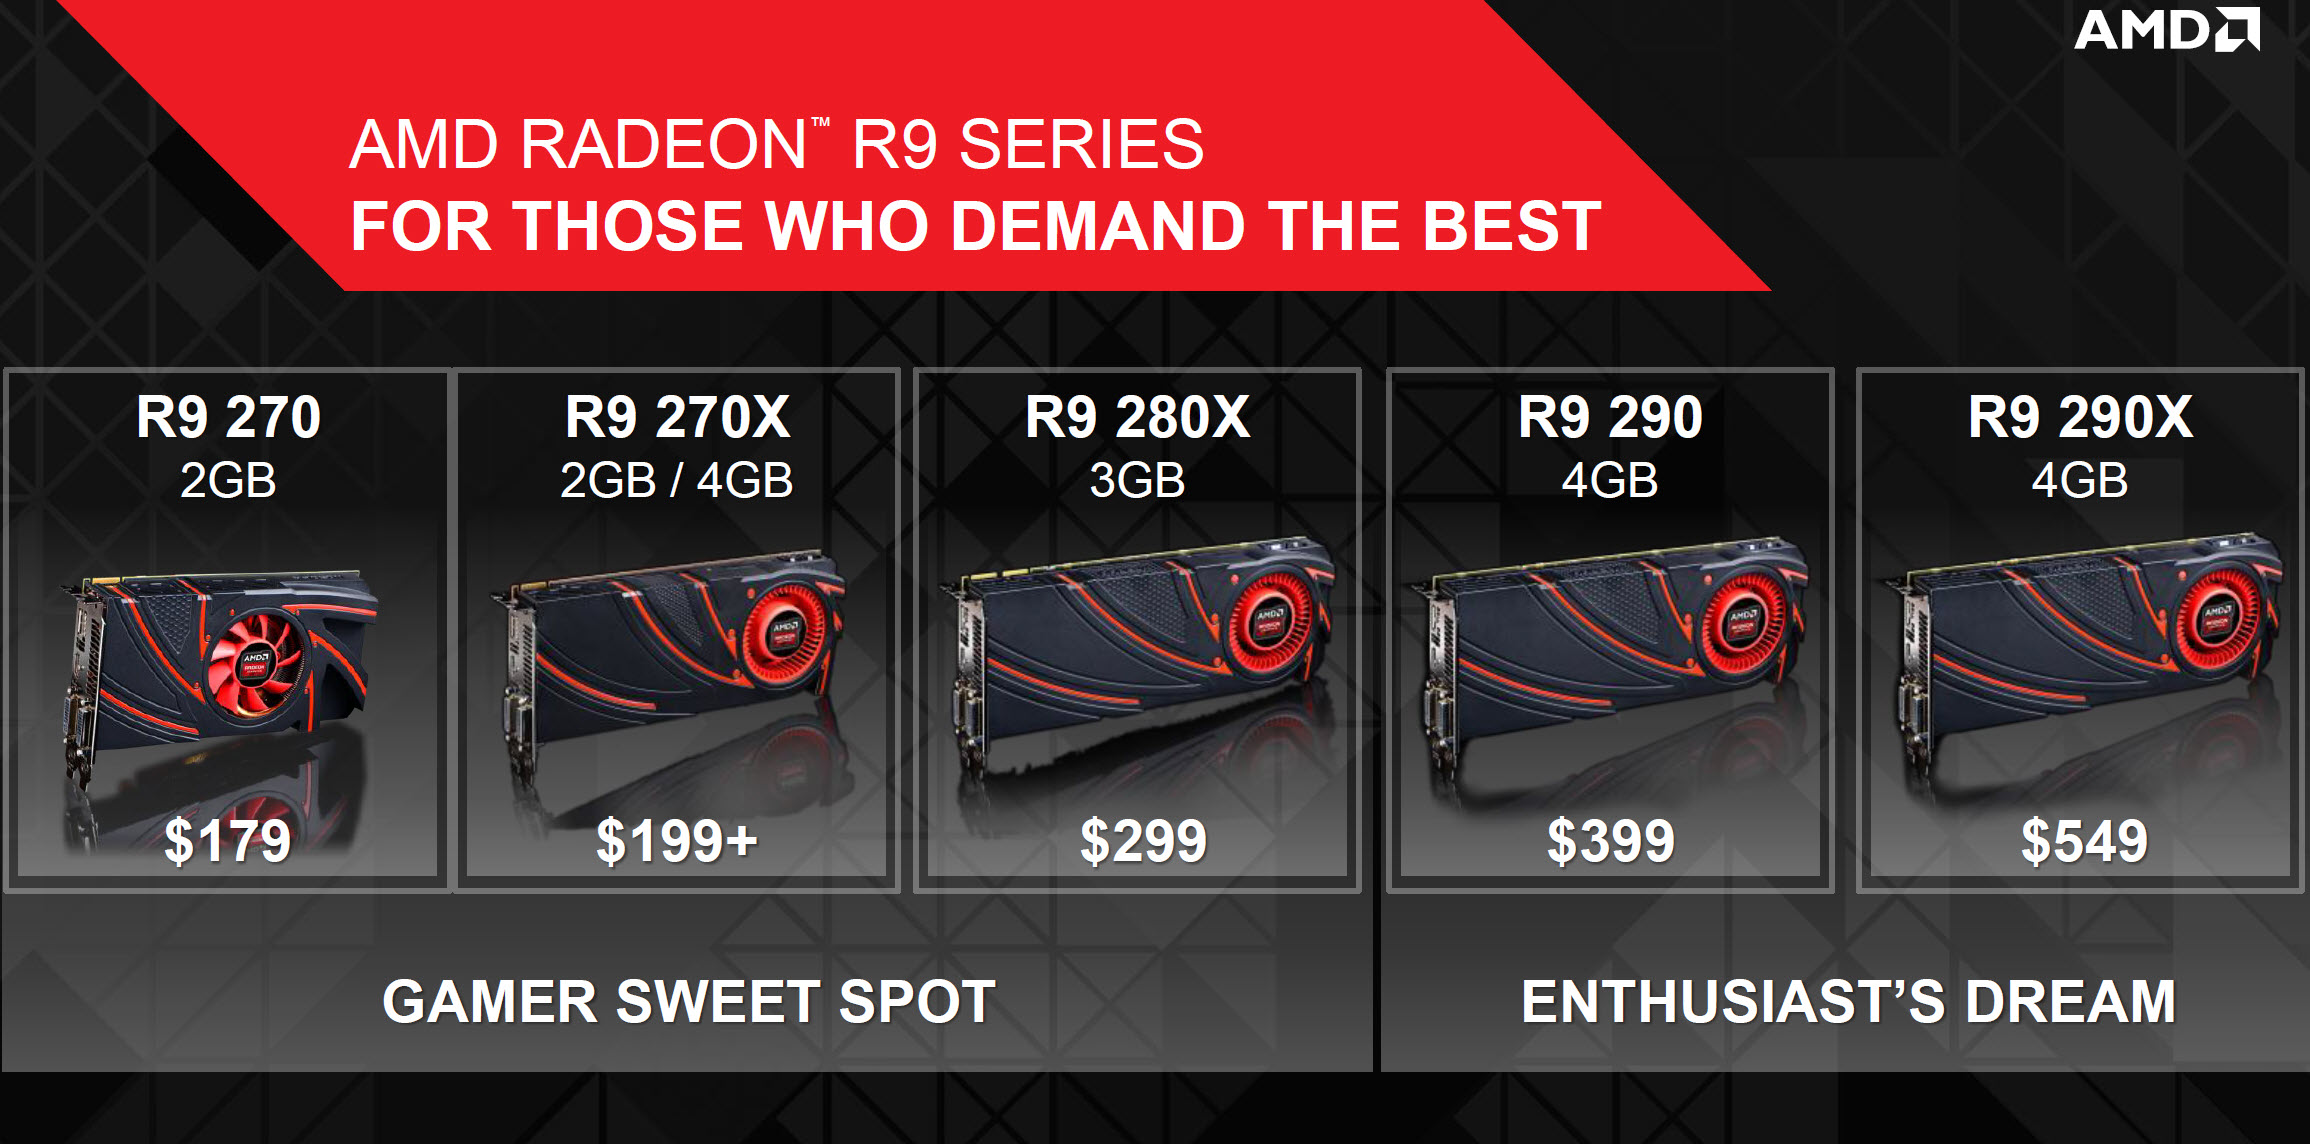 Amd Launches The Radeon R9 270 Curacao Pro Graphics Card